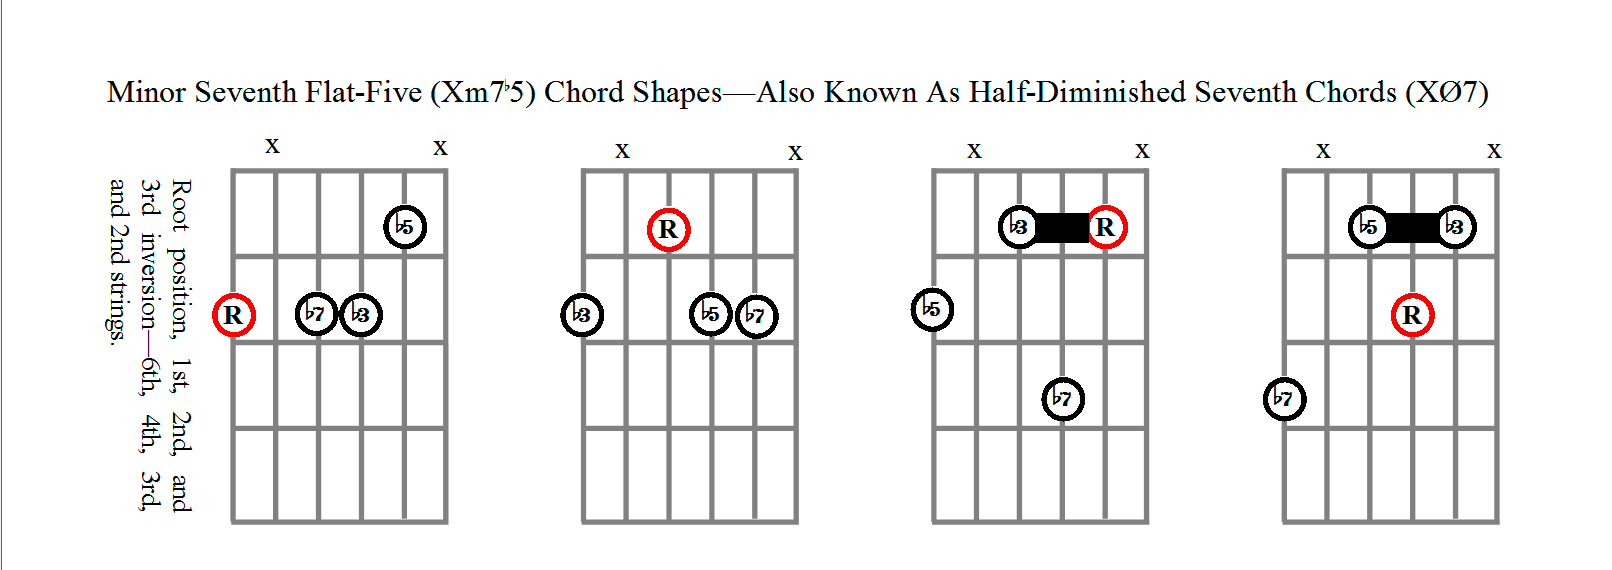 Minor Seventh Flat-Five Chord Shapes Using Strings 6,4,3,and 2